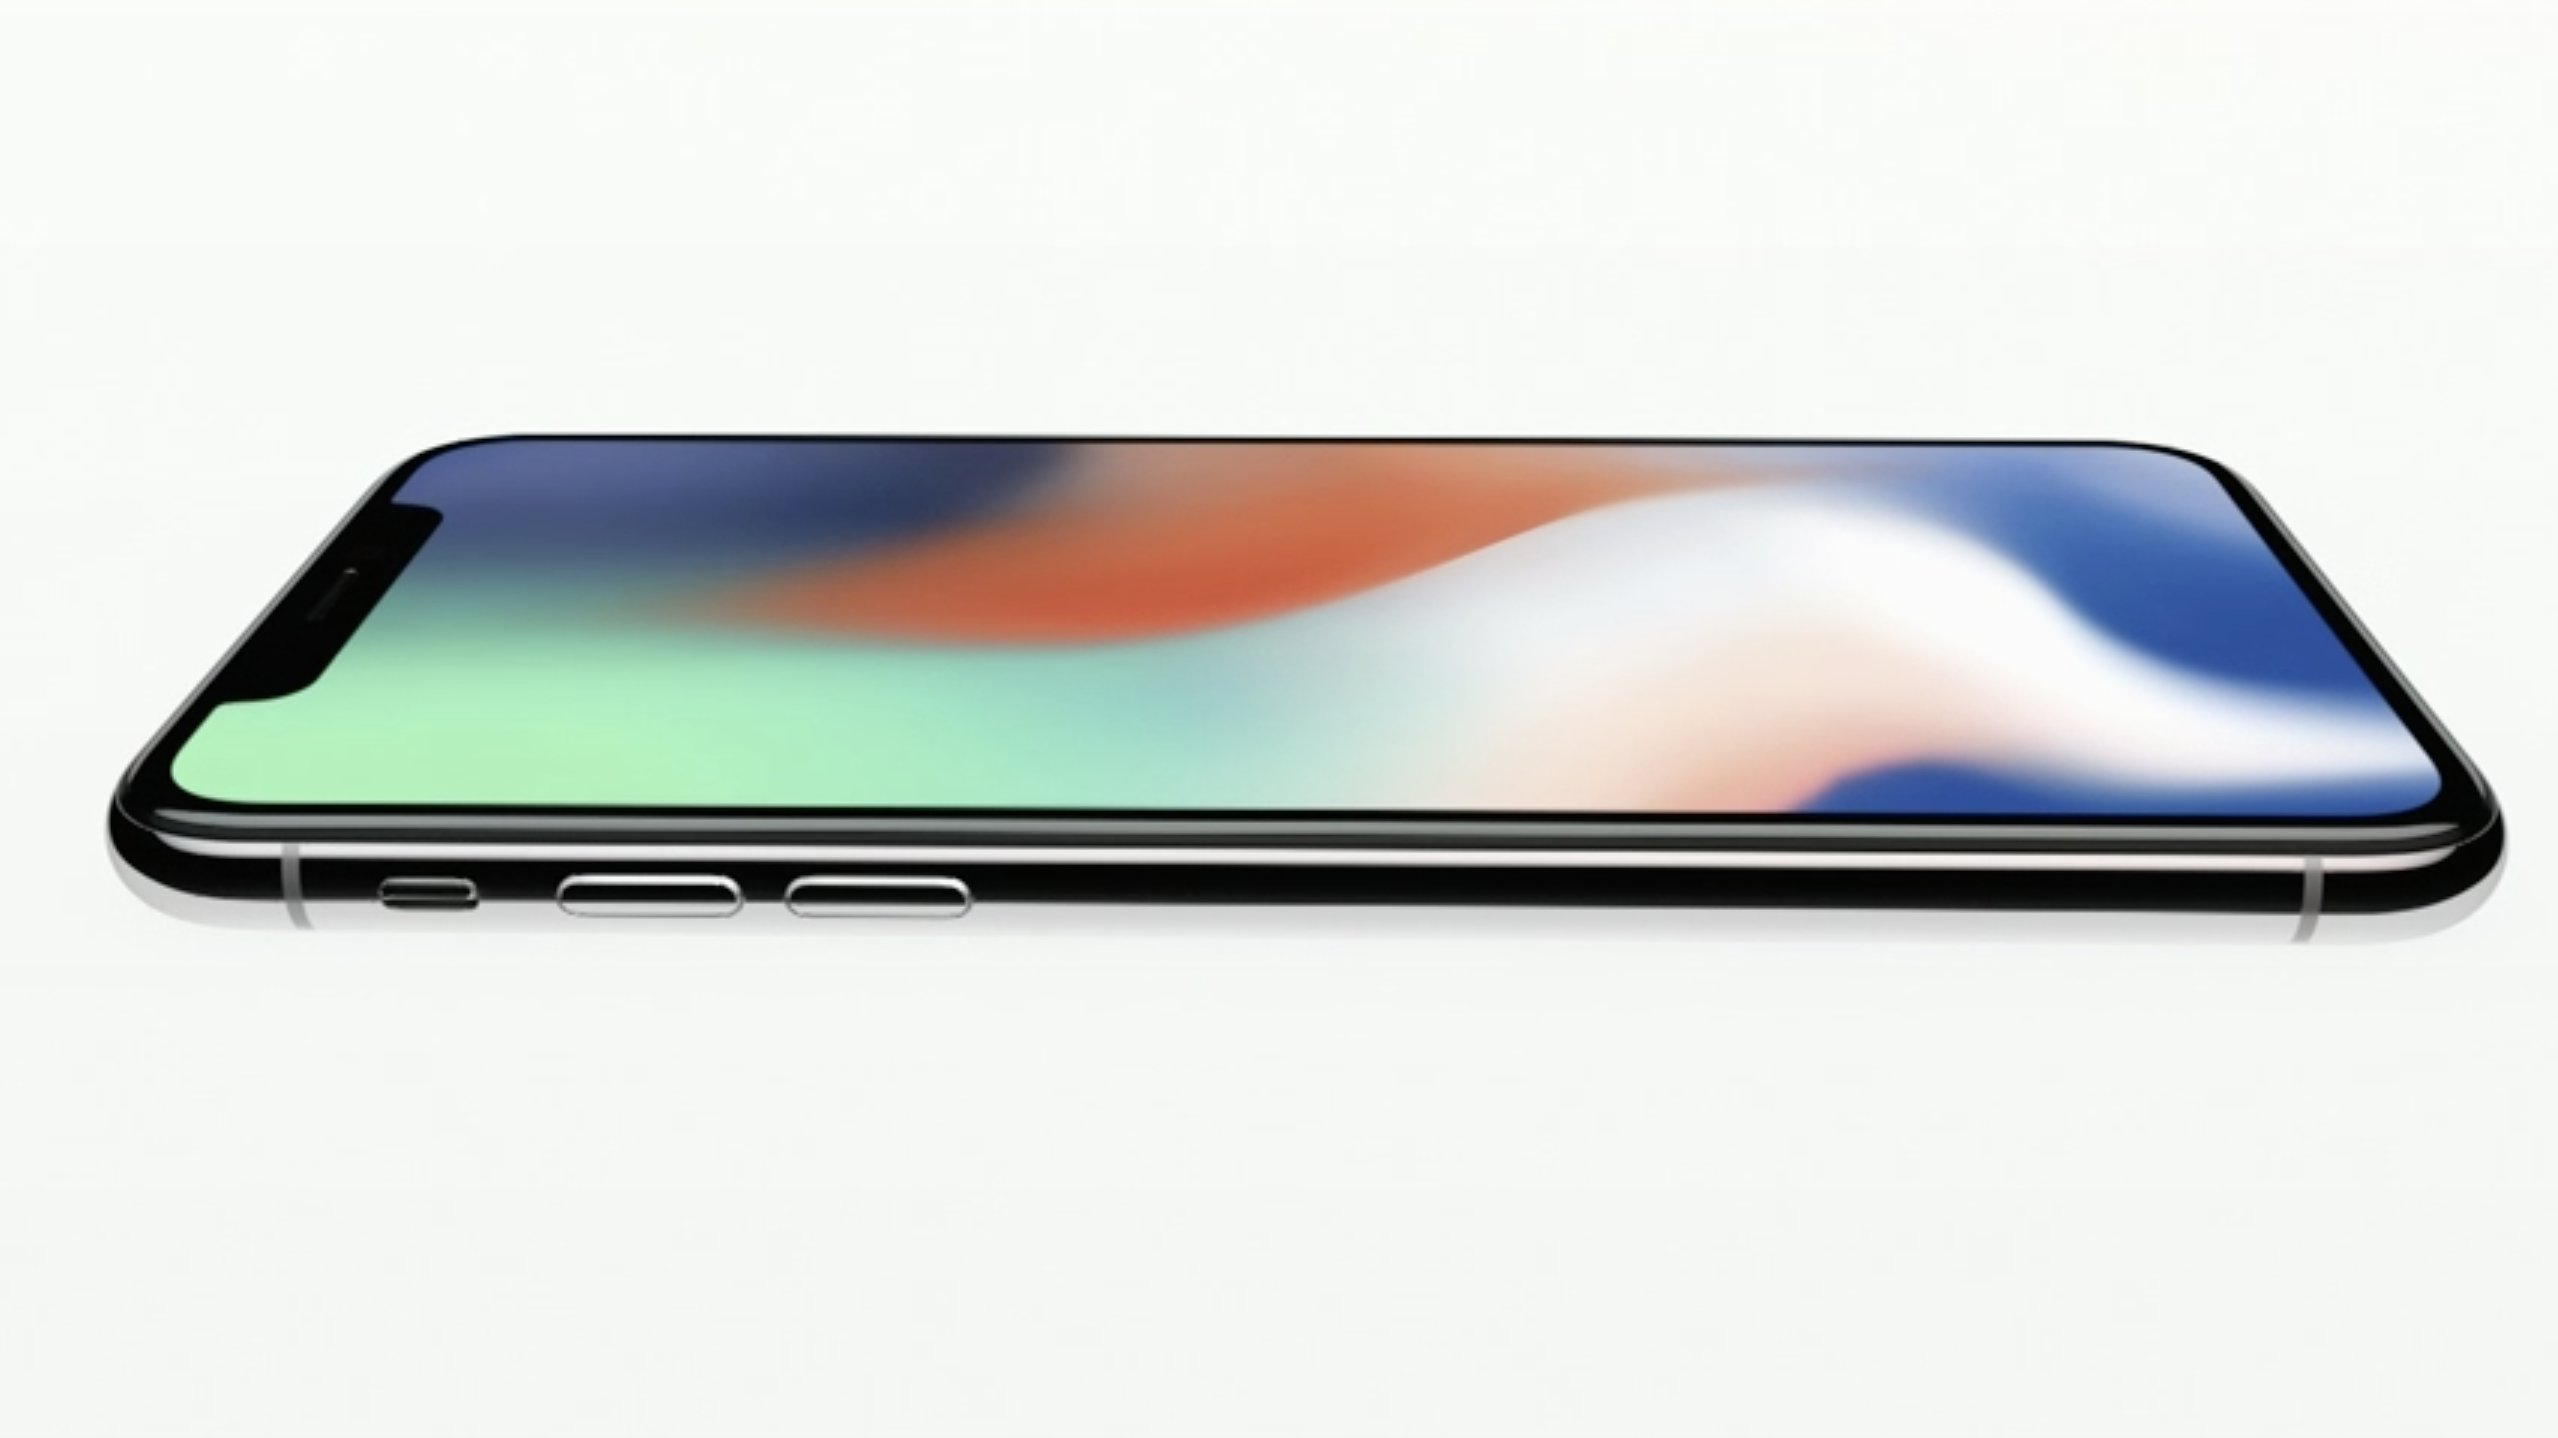 iphone_x_16-9.png